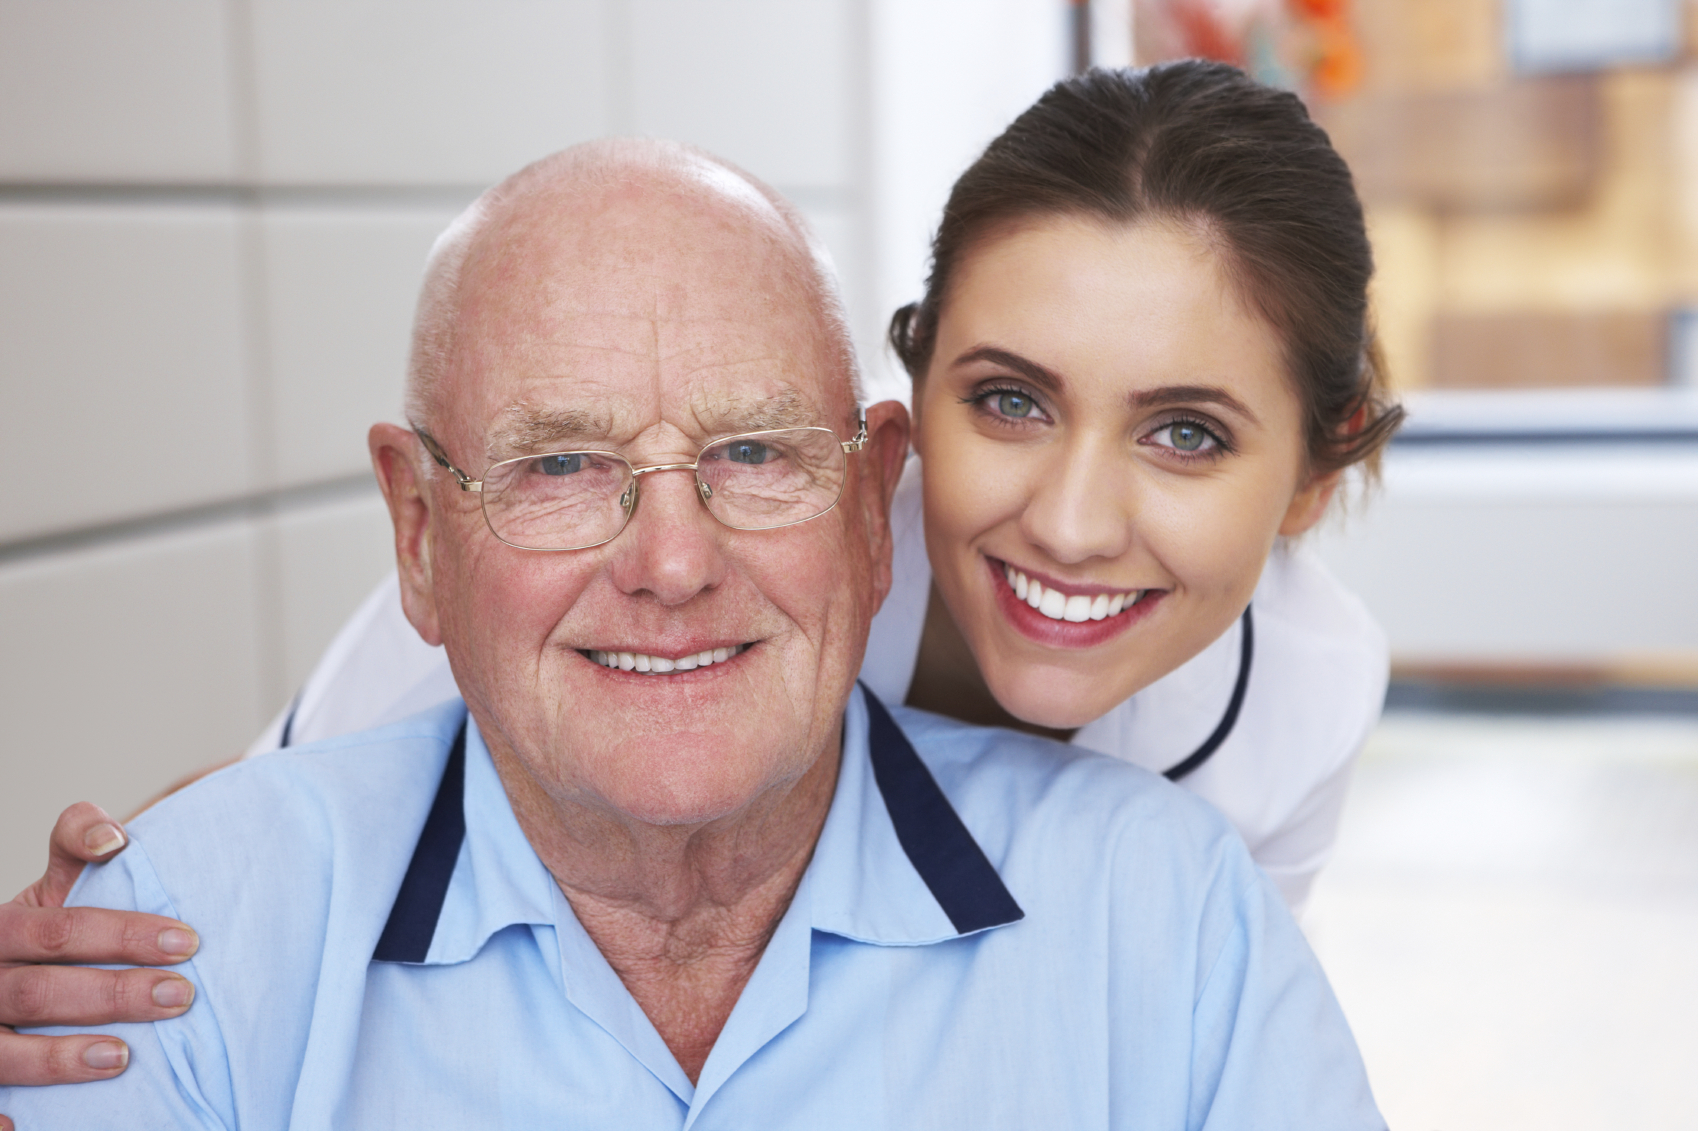 Attractive nurse and her elderly patient smile together for the camera. Horizontal shot.